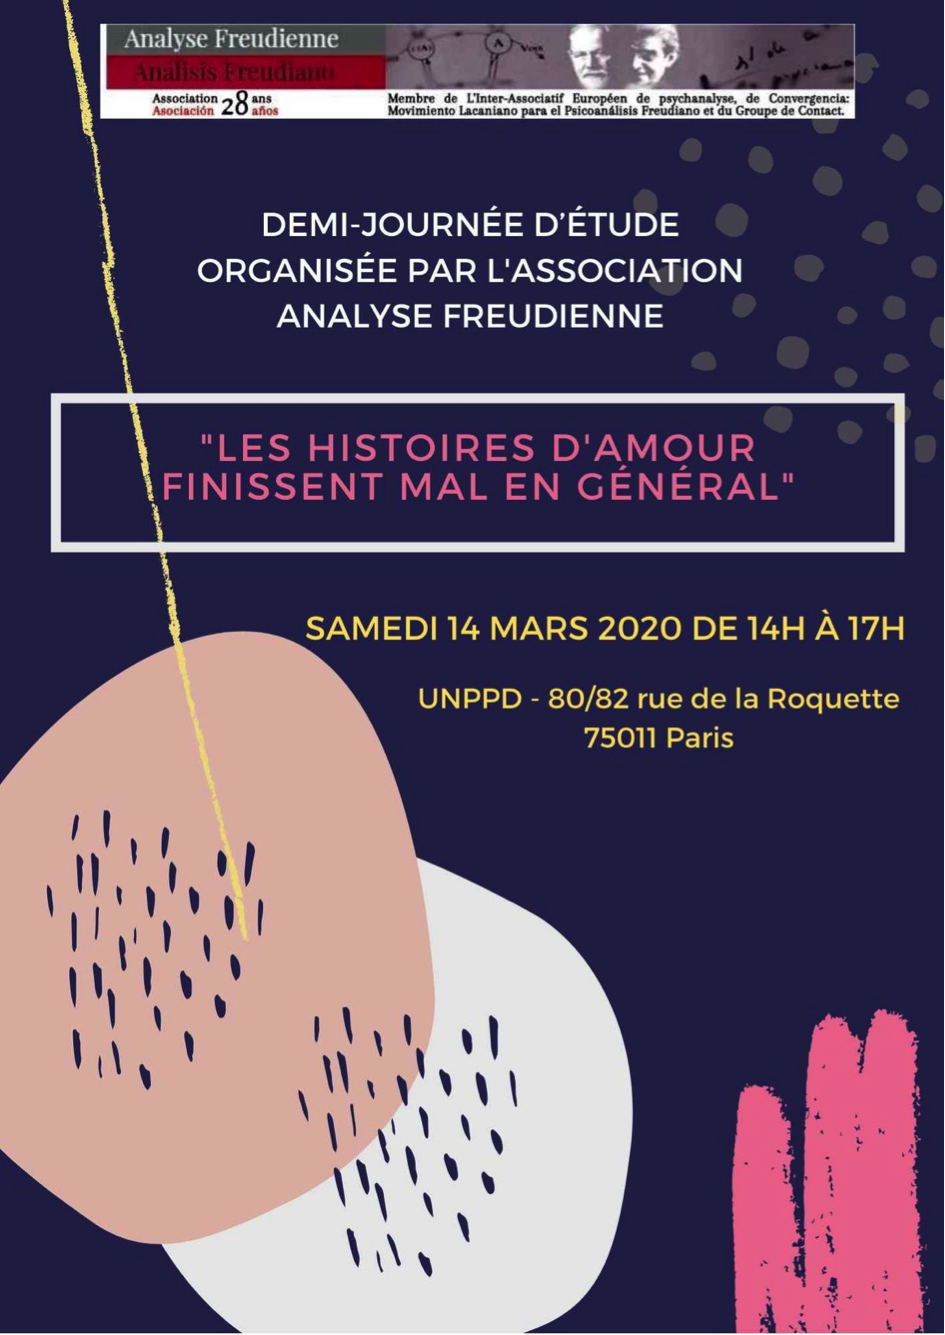 Paris Media Jornada : – 14 Marzo de 2020 de 14h a 17h